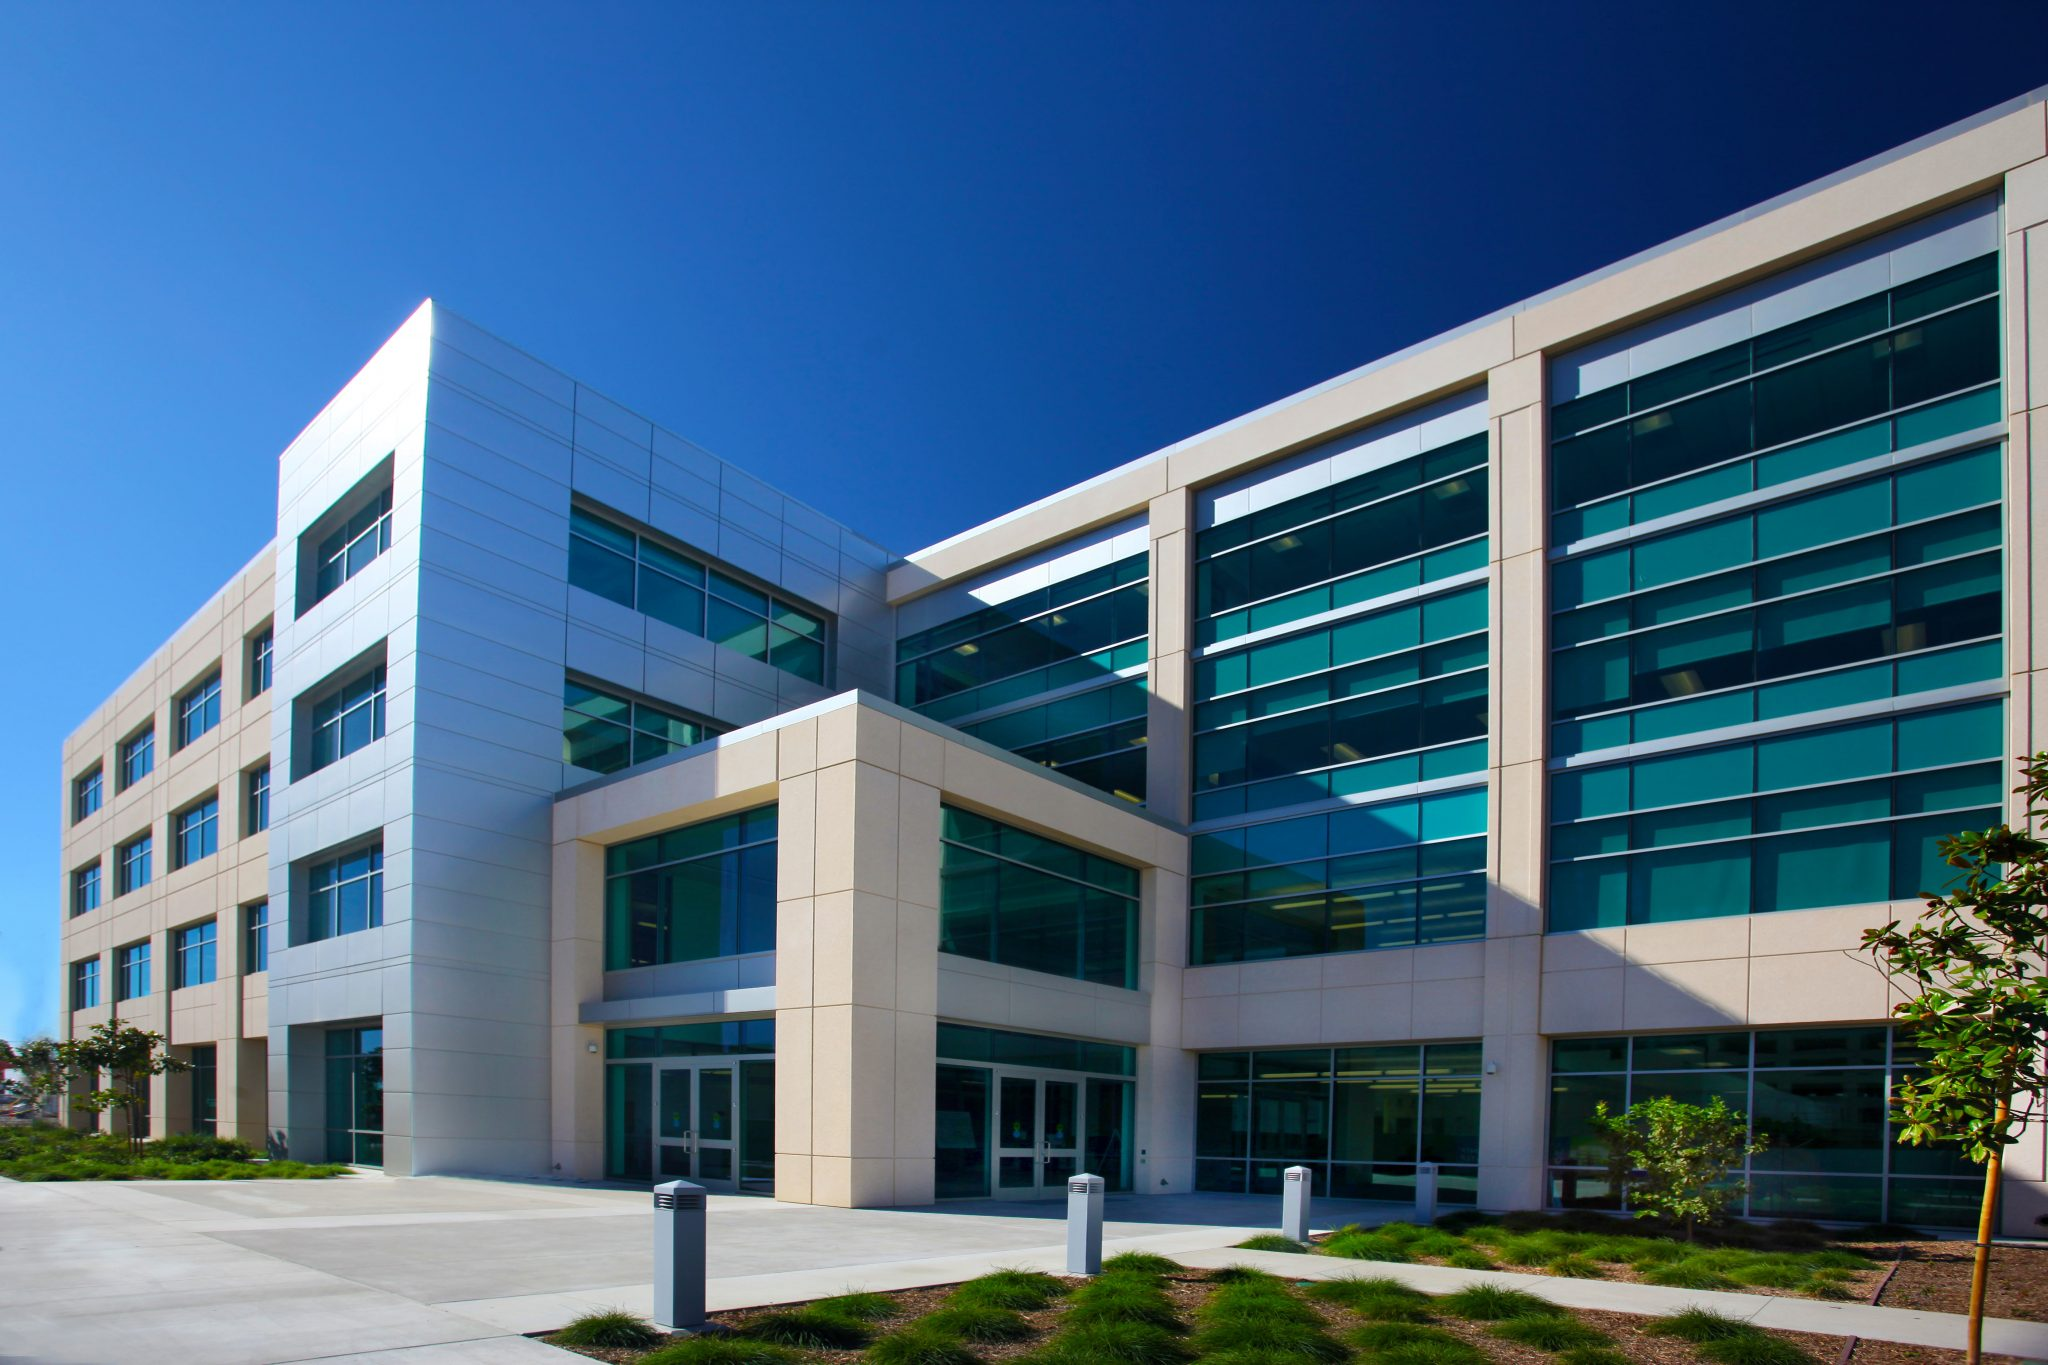 county operations center | San diego